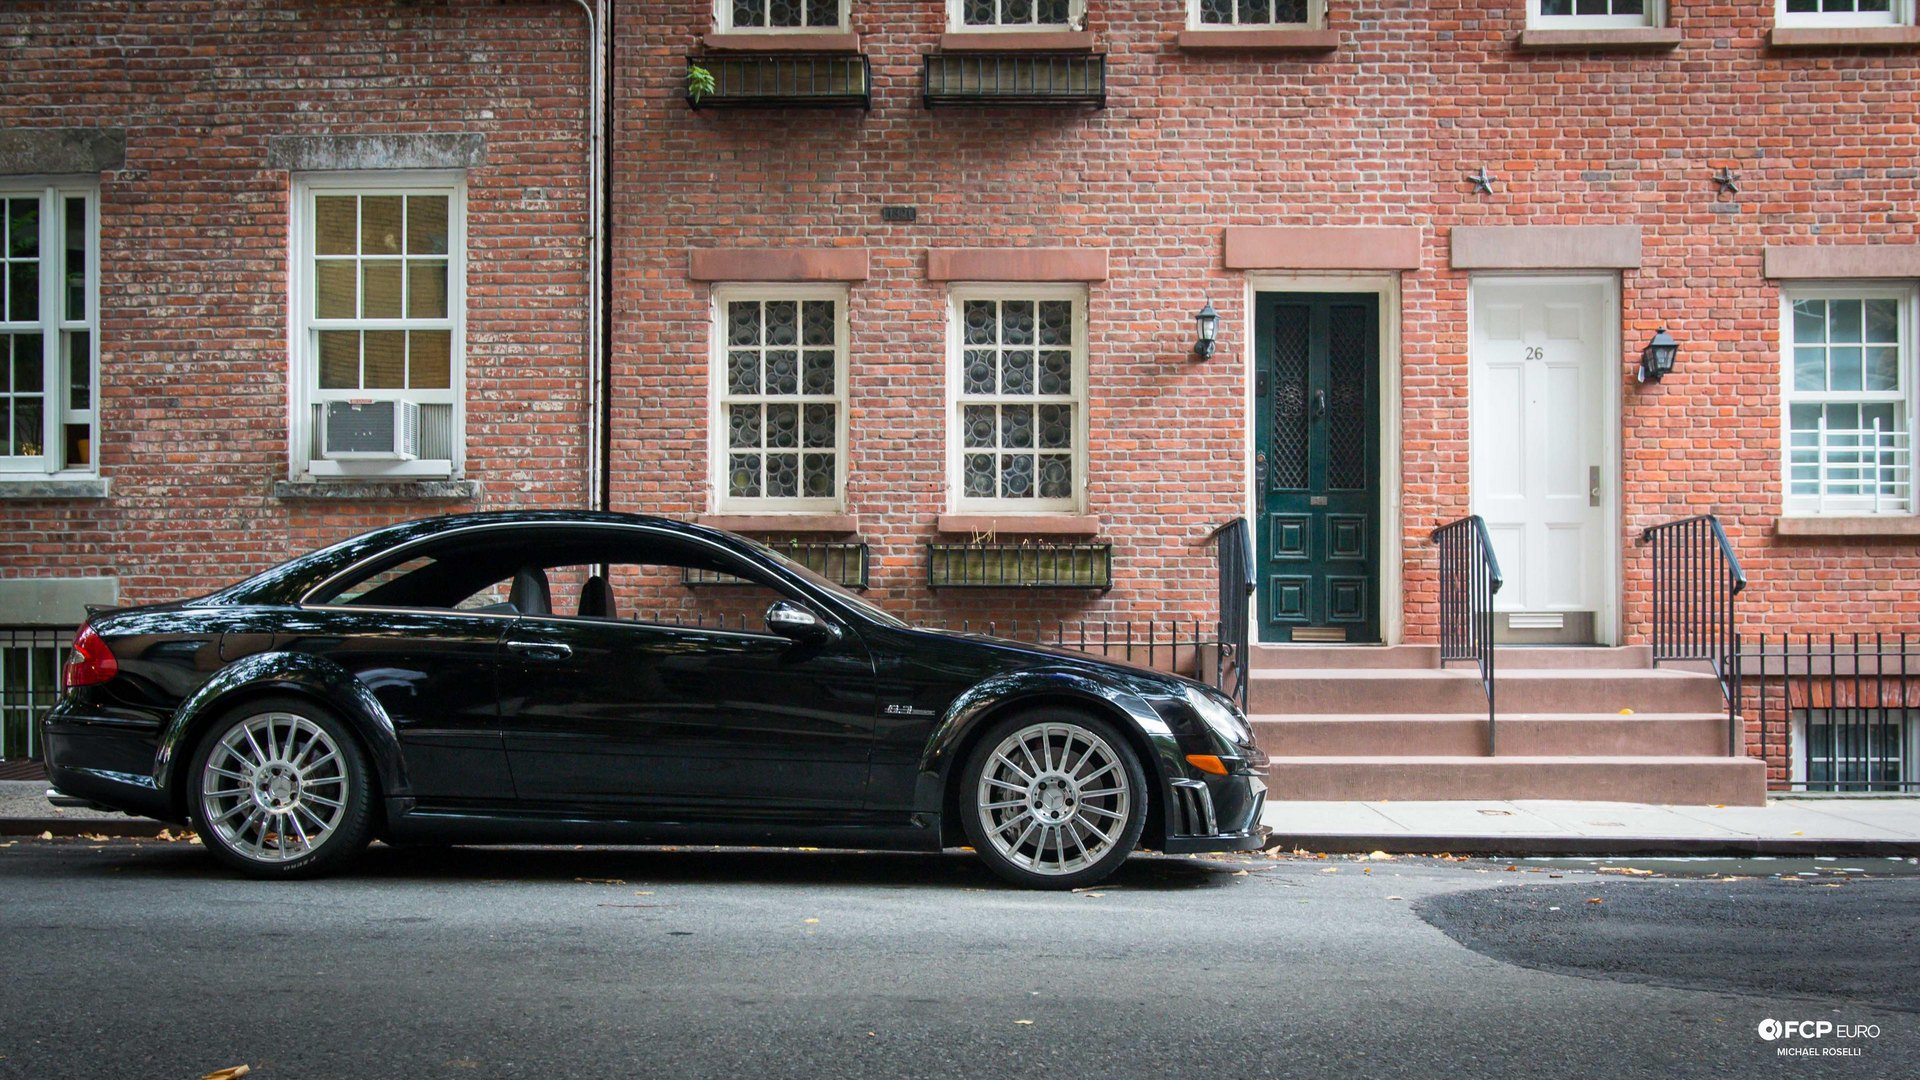 CLK63 AMG Black Series NYC